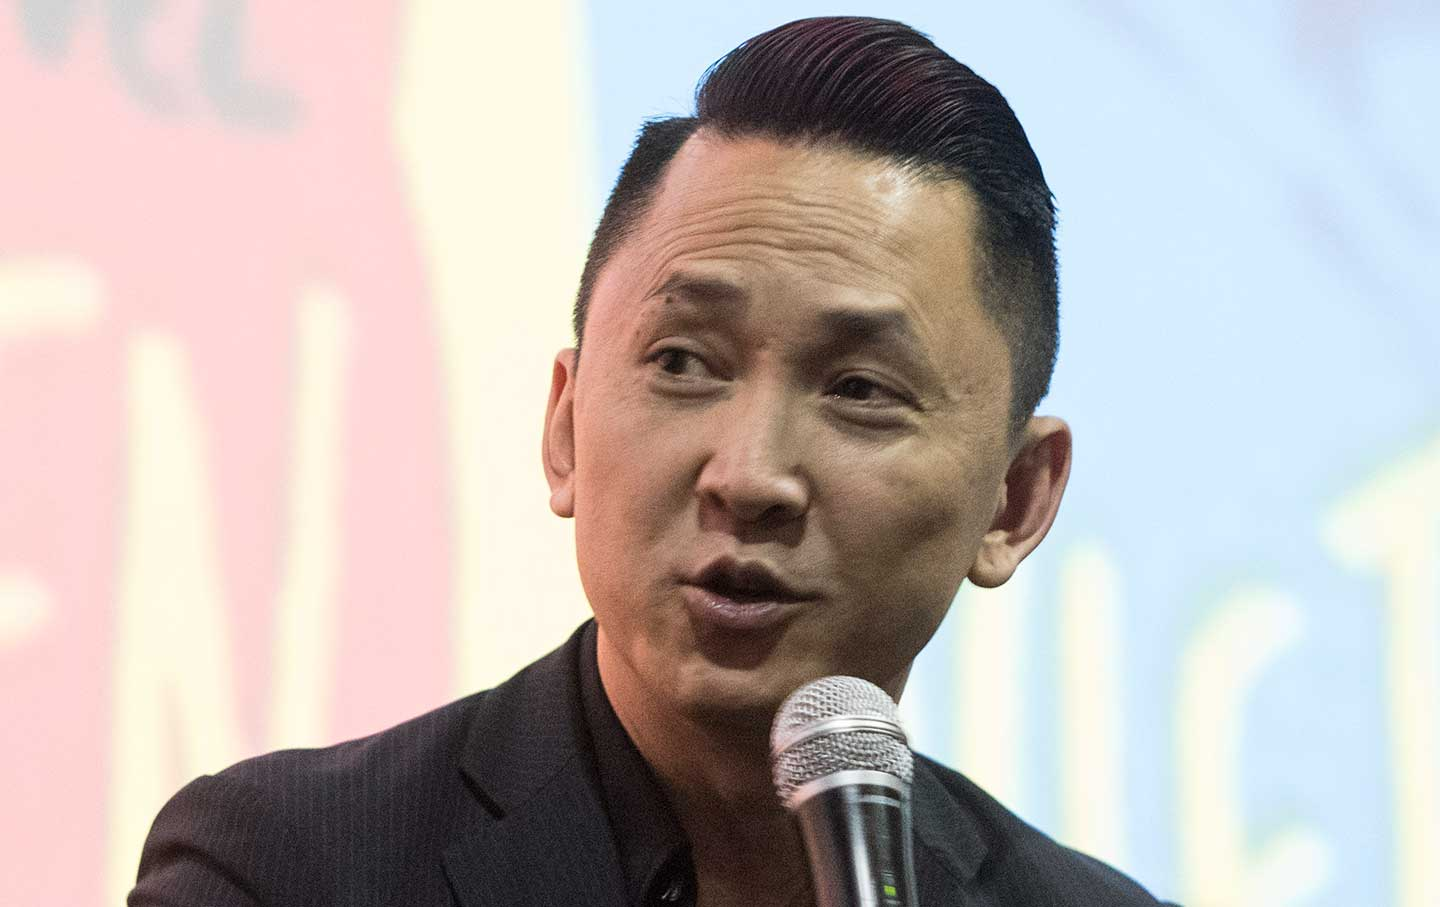 VIDEO Viet Thanh Nguyen Talks About the Rhetoric of Imperialism and Hate